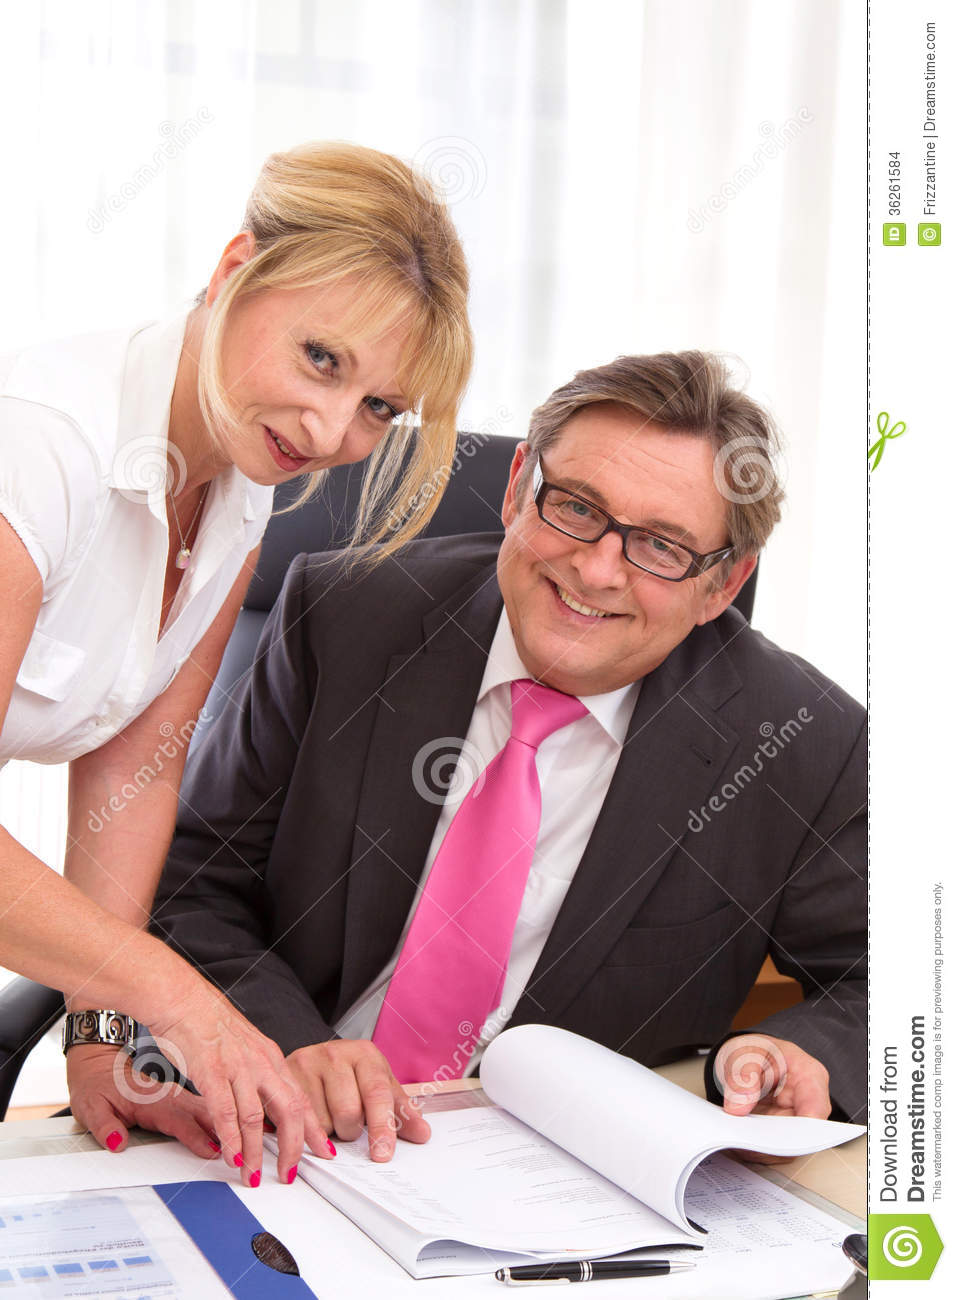 Secretary Flirting with Boss